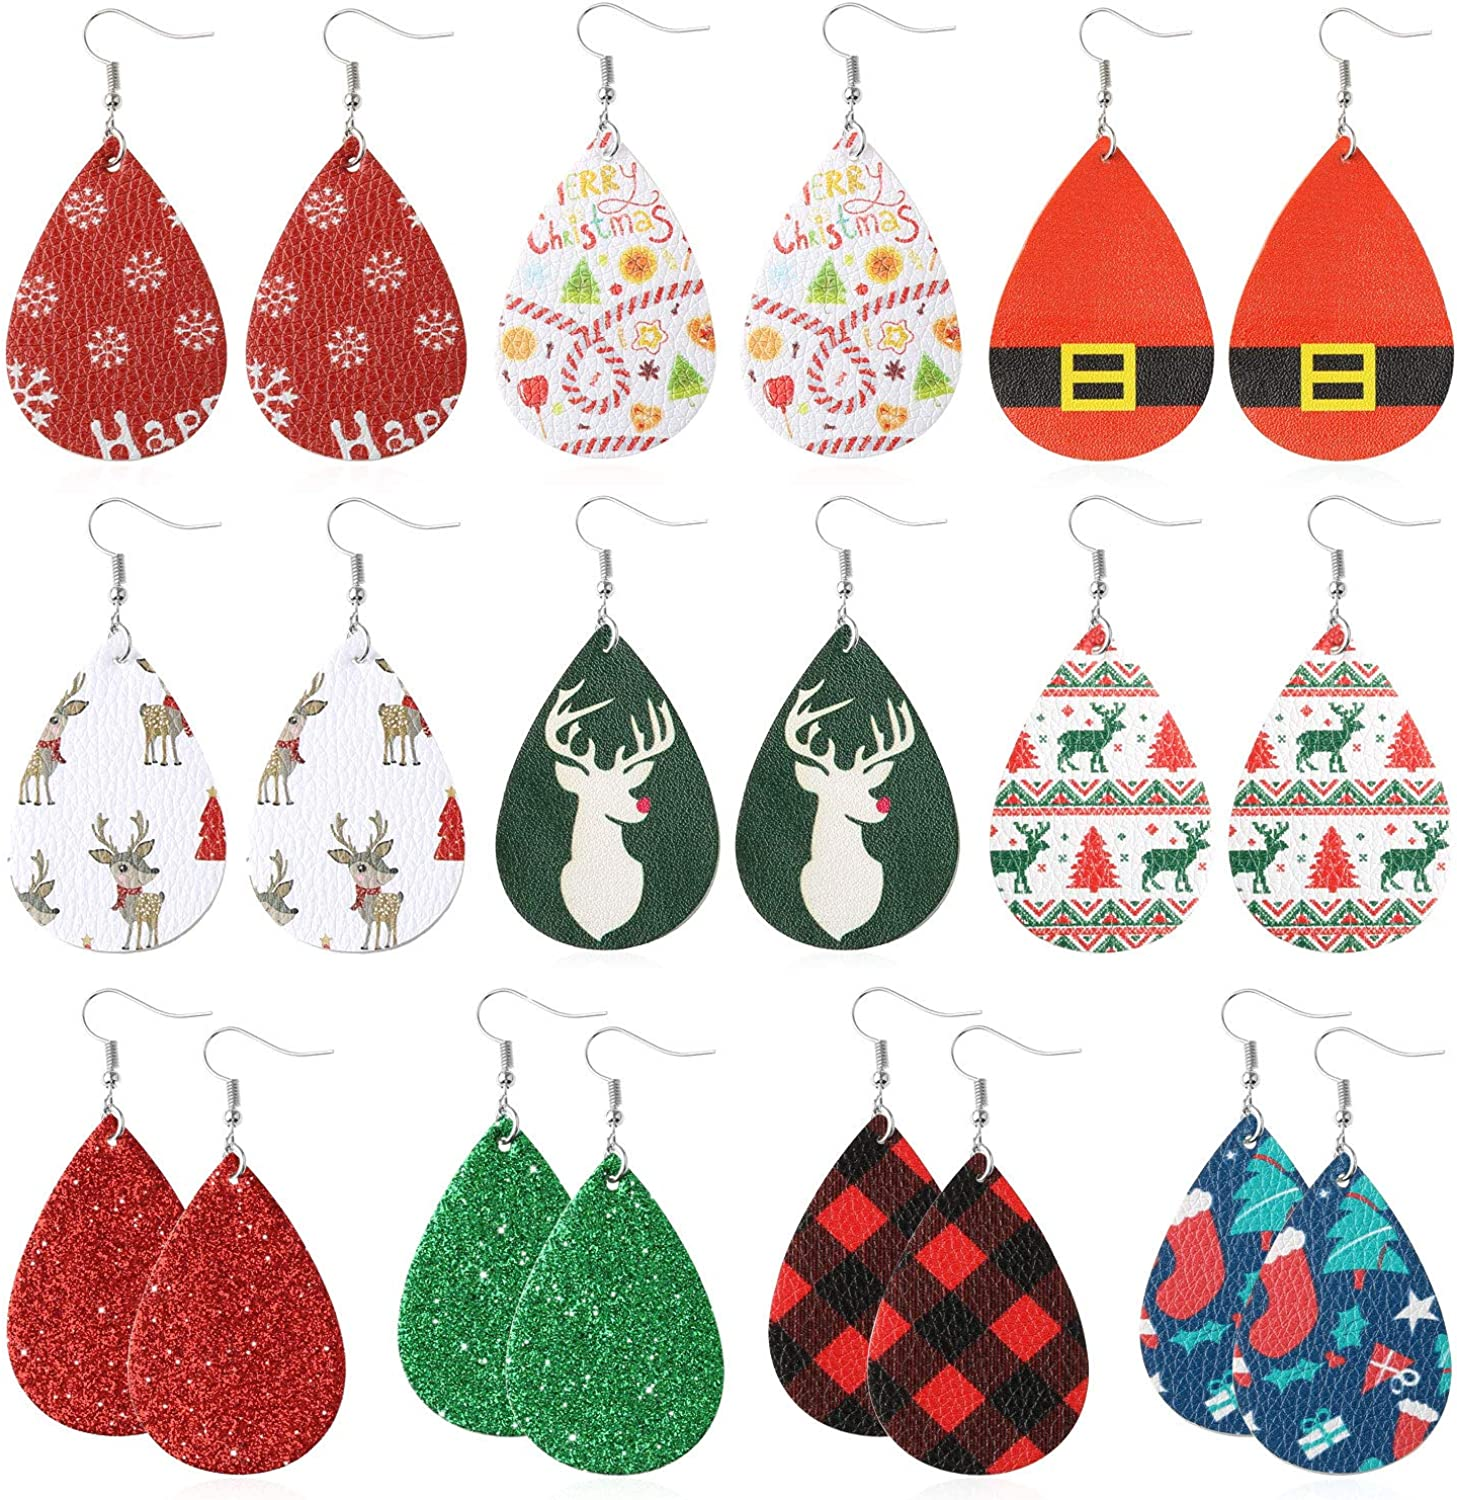 Amazon Com Christmas Earrings 10 Pairs For Women Girl Bulk Purchase Under 5 Dollars Xmas New Year Gifts Statement Handmade Lightweight Leaf Drop Dangle Earring With Faux Leather Clothing